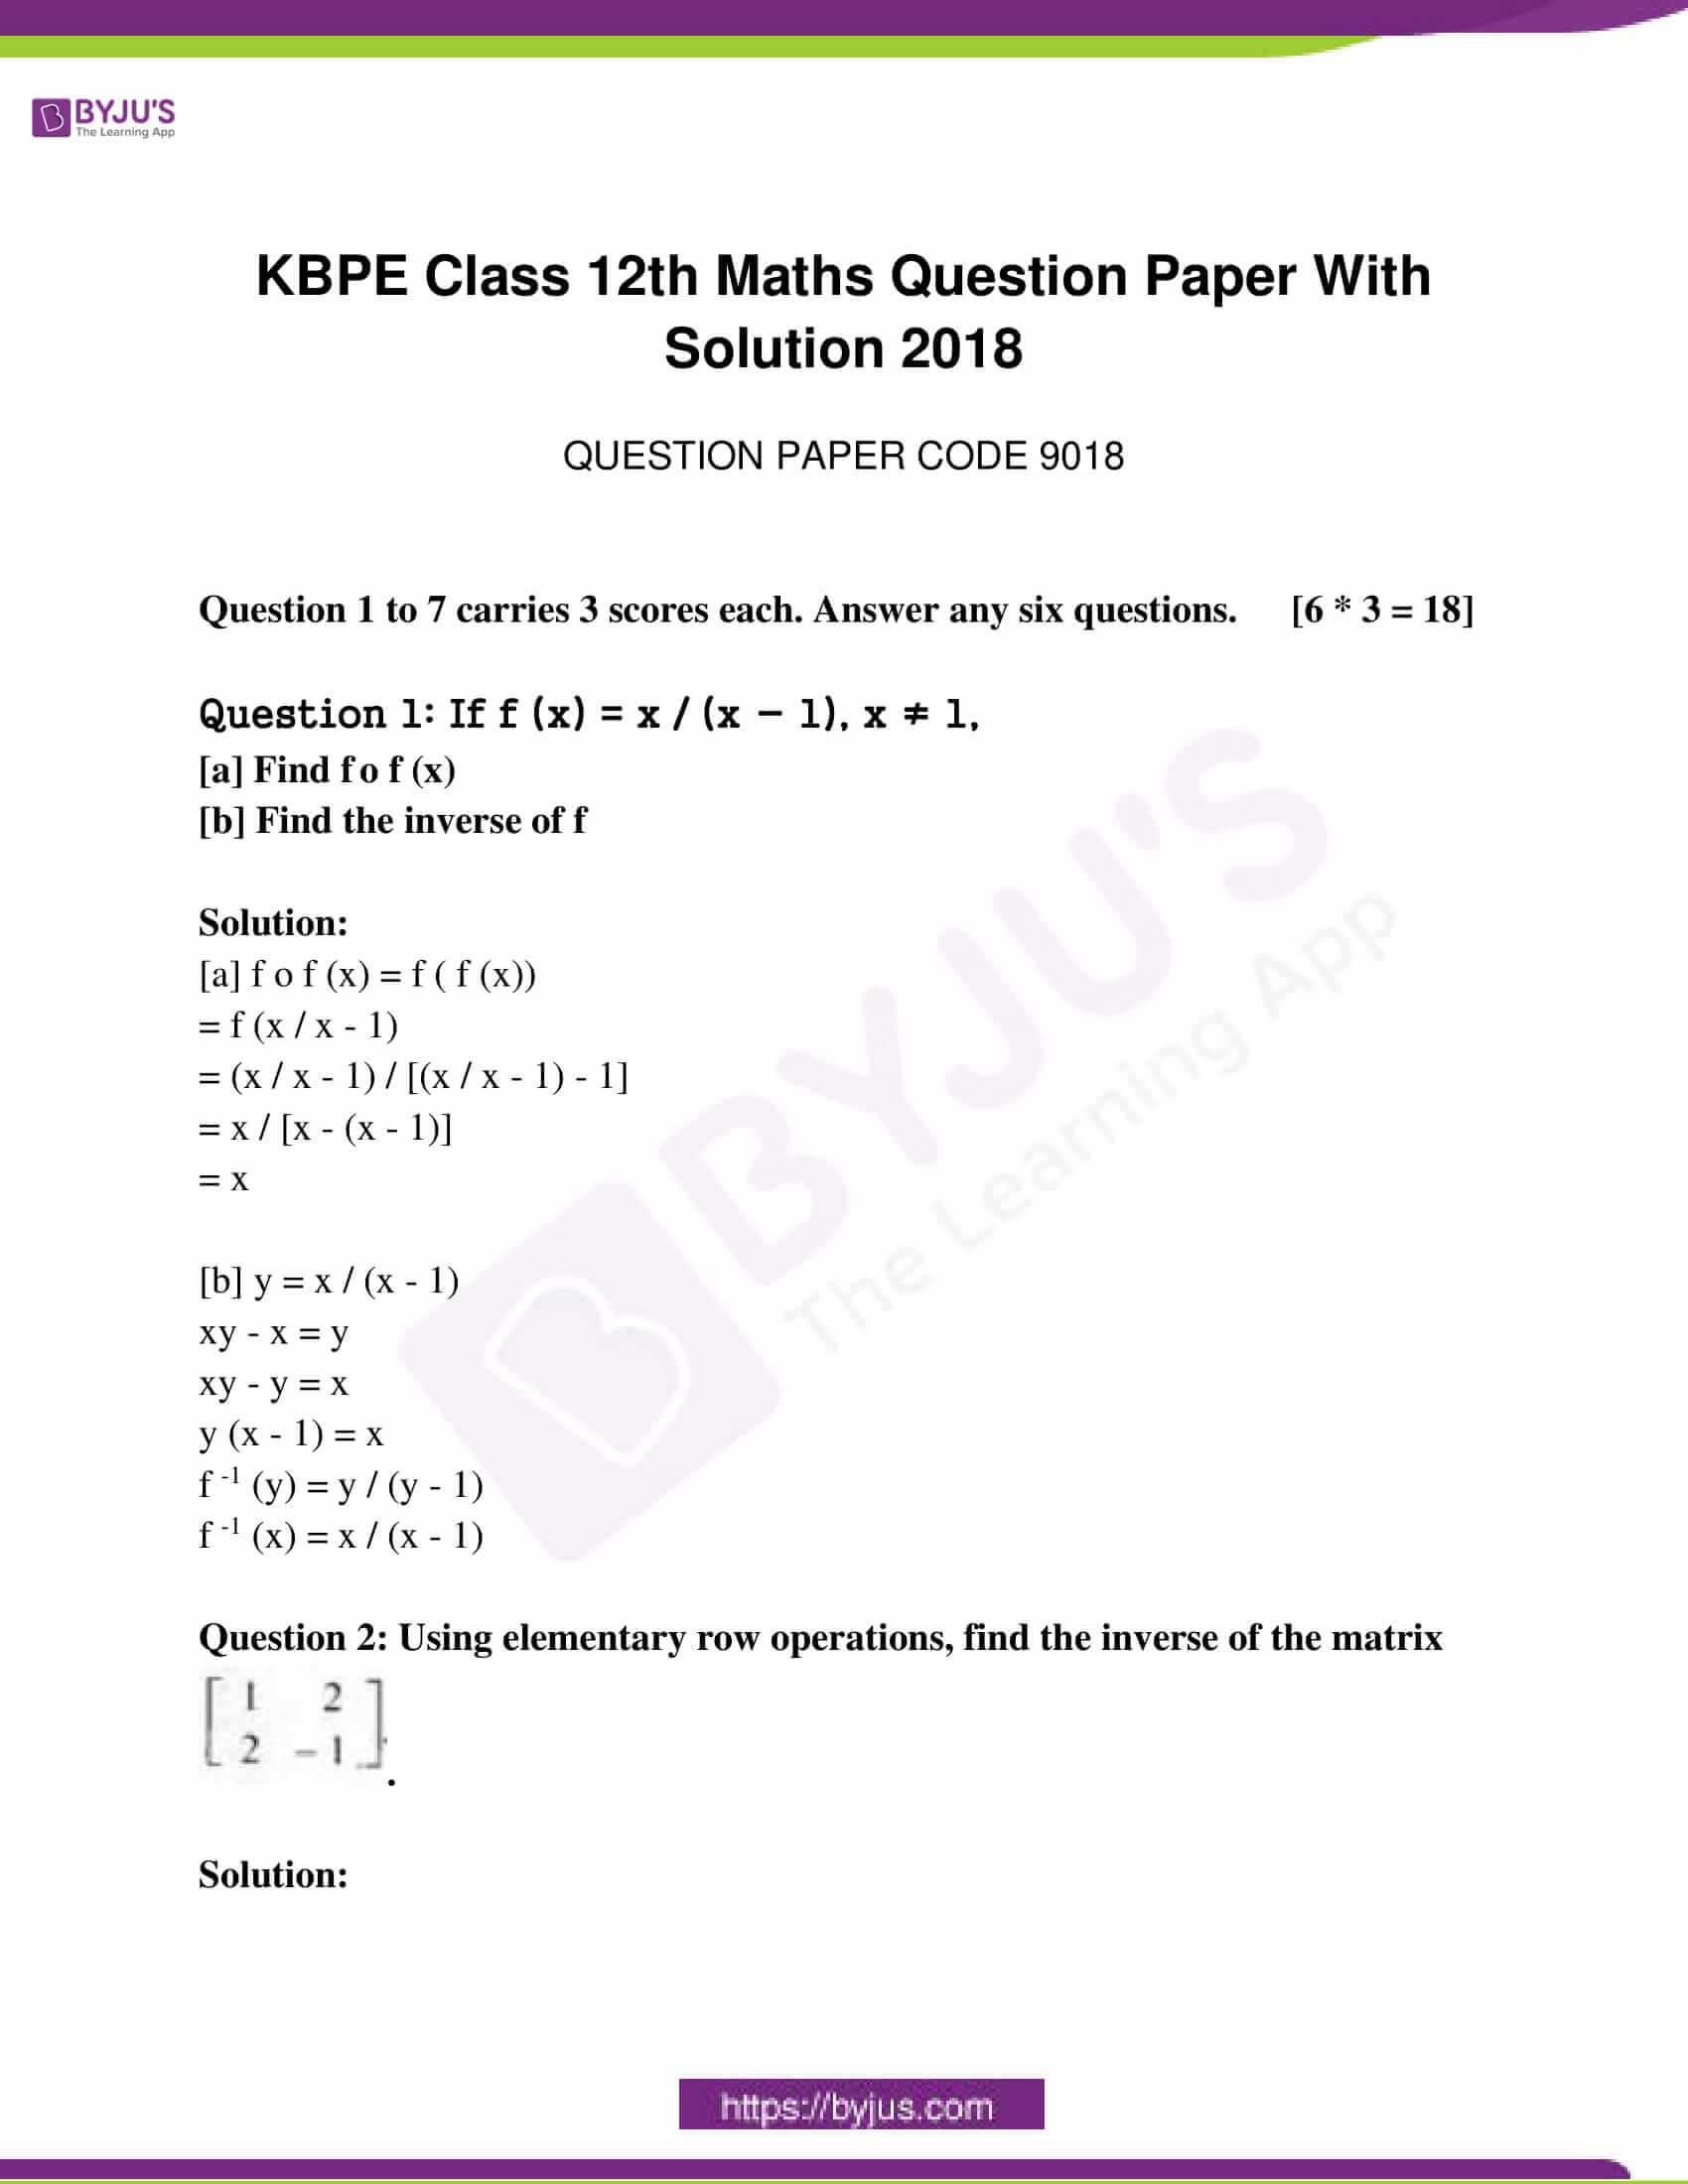 kerala class 12 examination question paper solutions march 2018 01